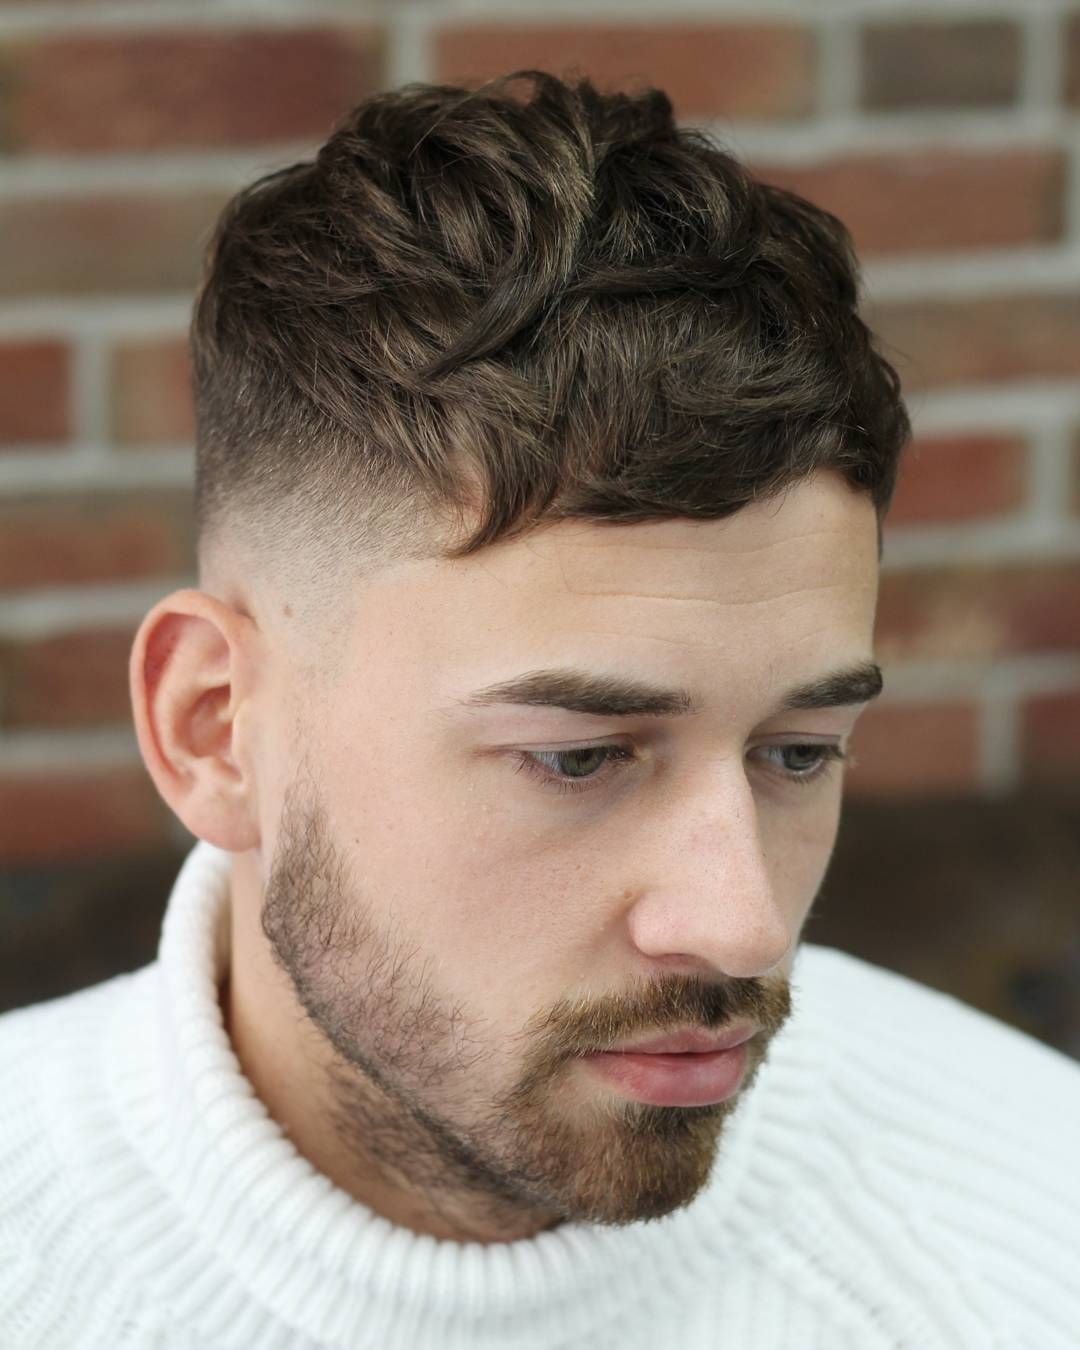 100+ New Men\'s Hairstyles For 2017 | Haircut styles, Short ...